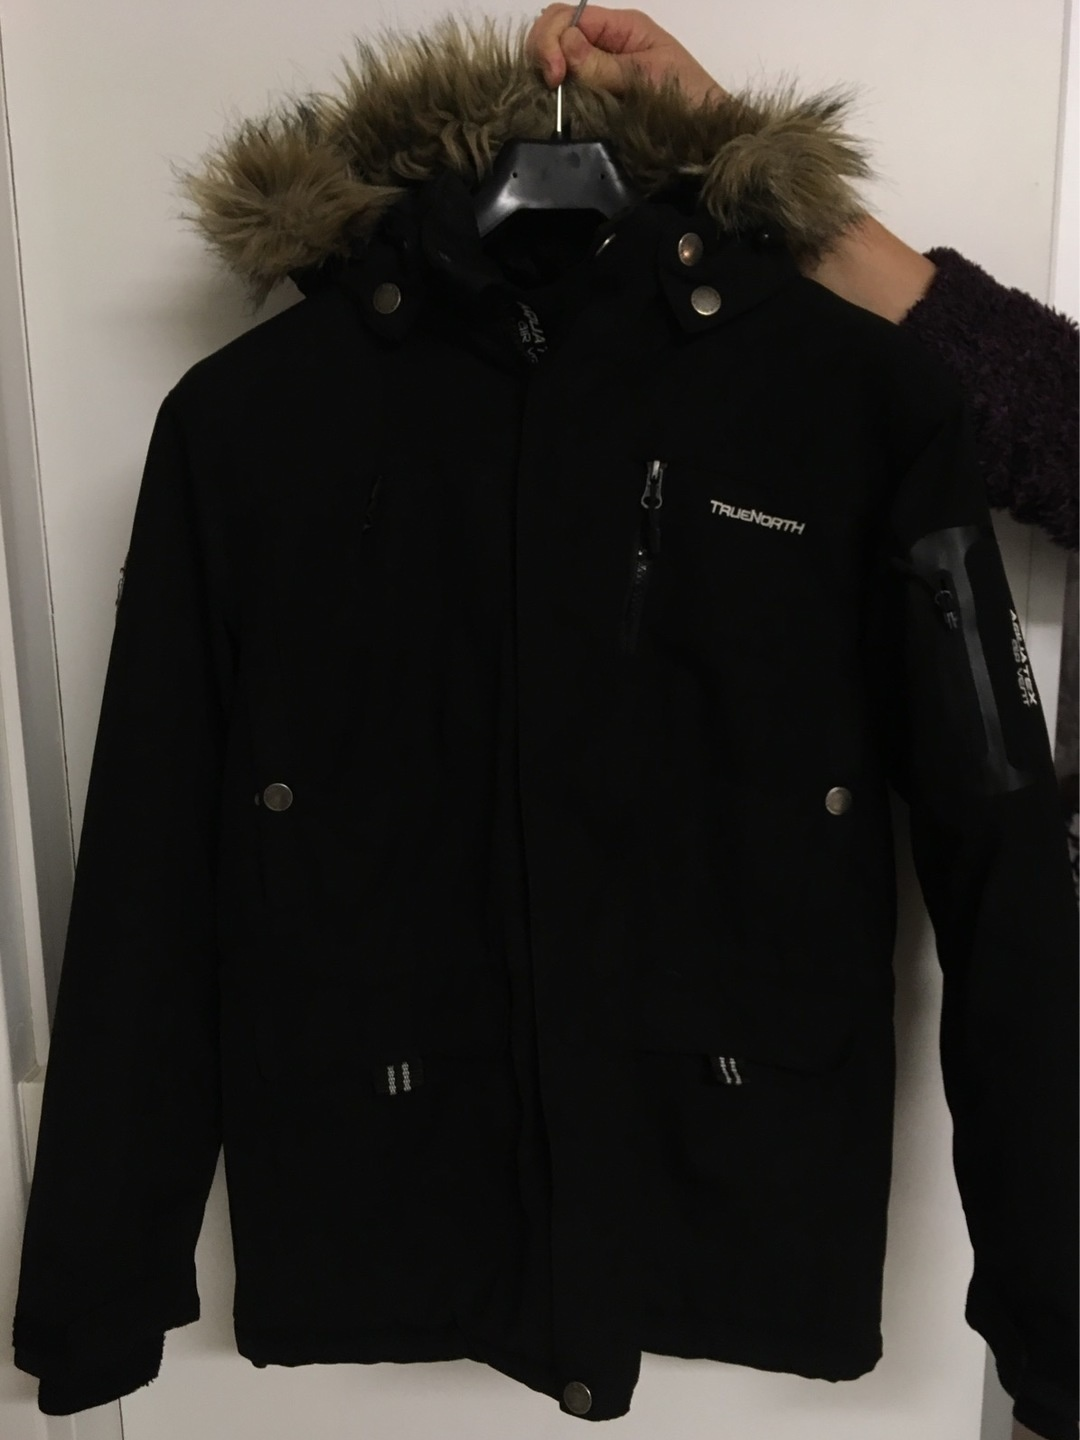 Women's coats & jackets - TRUENORTH photo 1